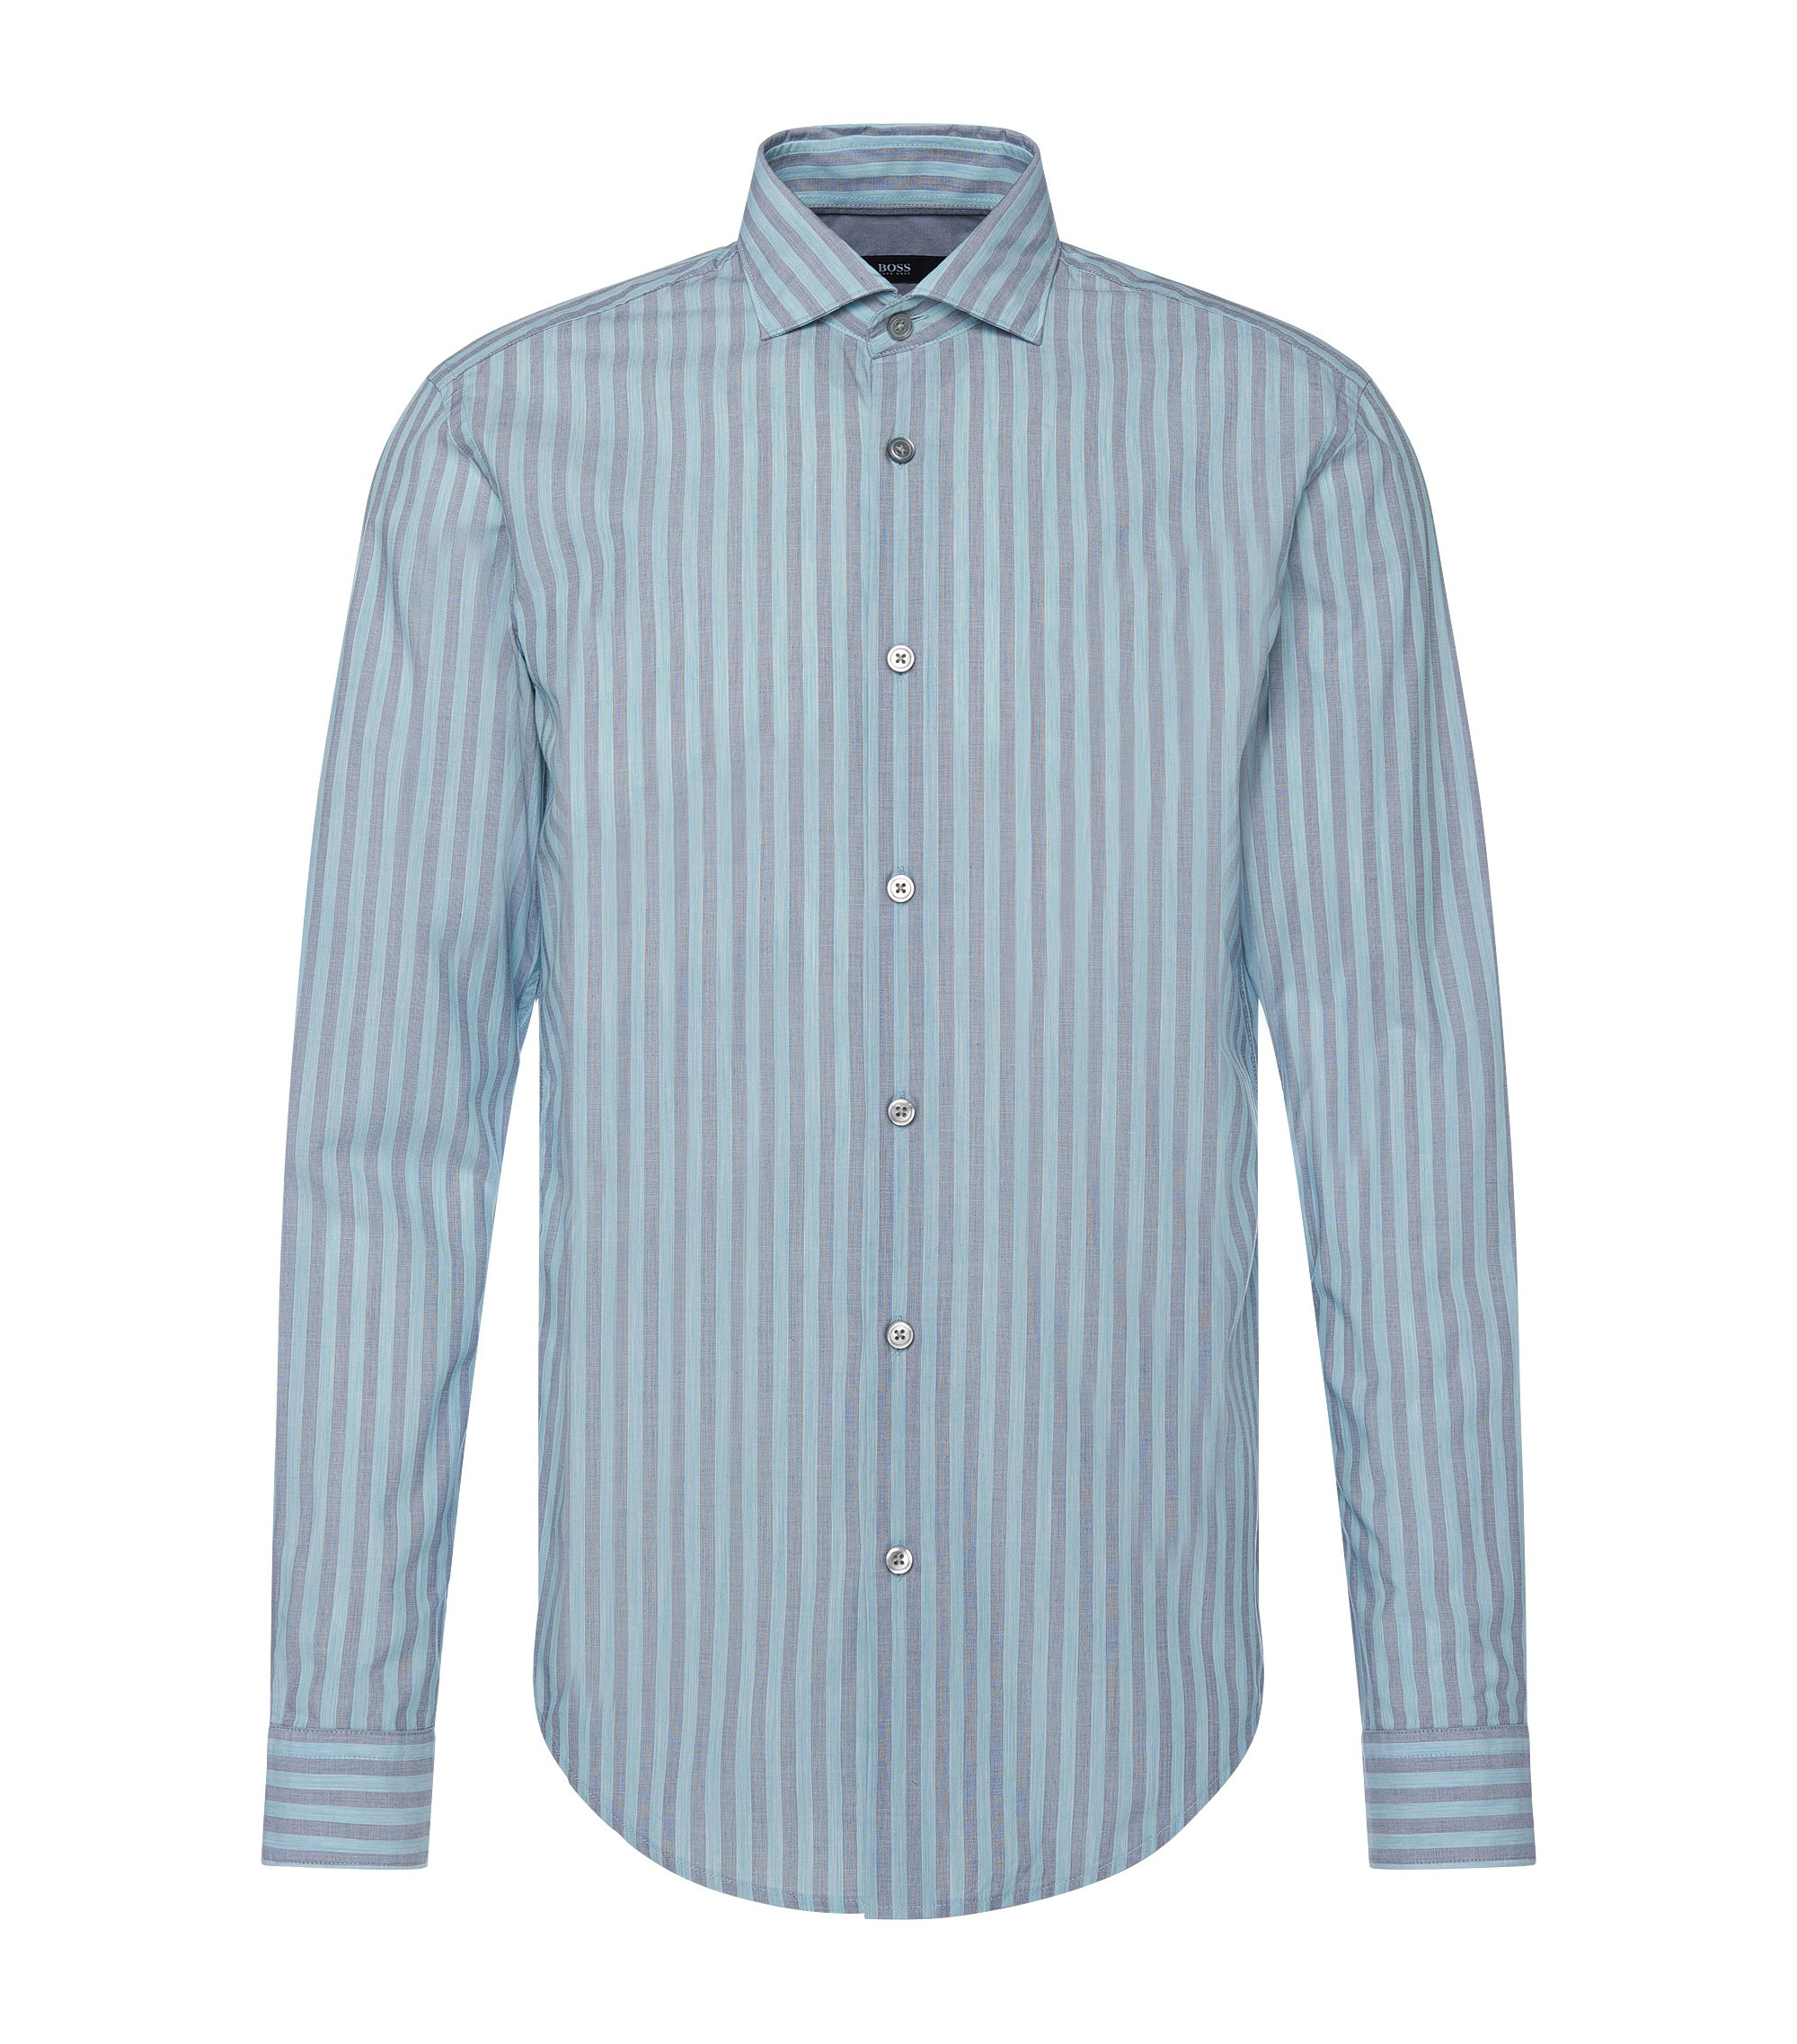 Cotton Striped Button Down Shirt, Slim Fit | Ridley, Open Green